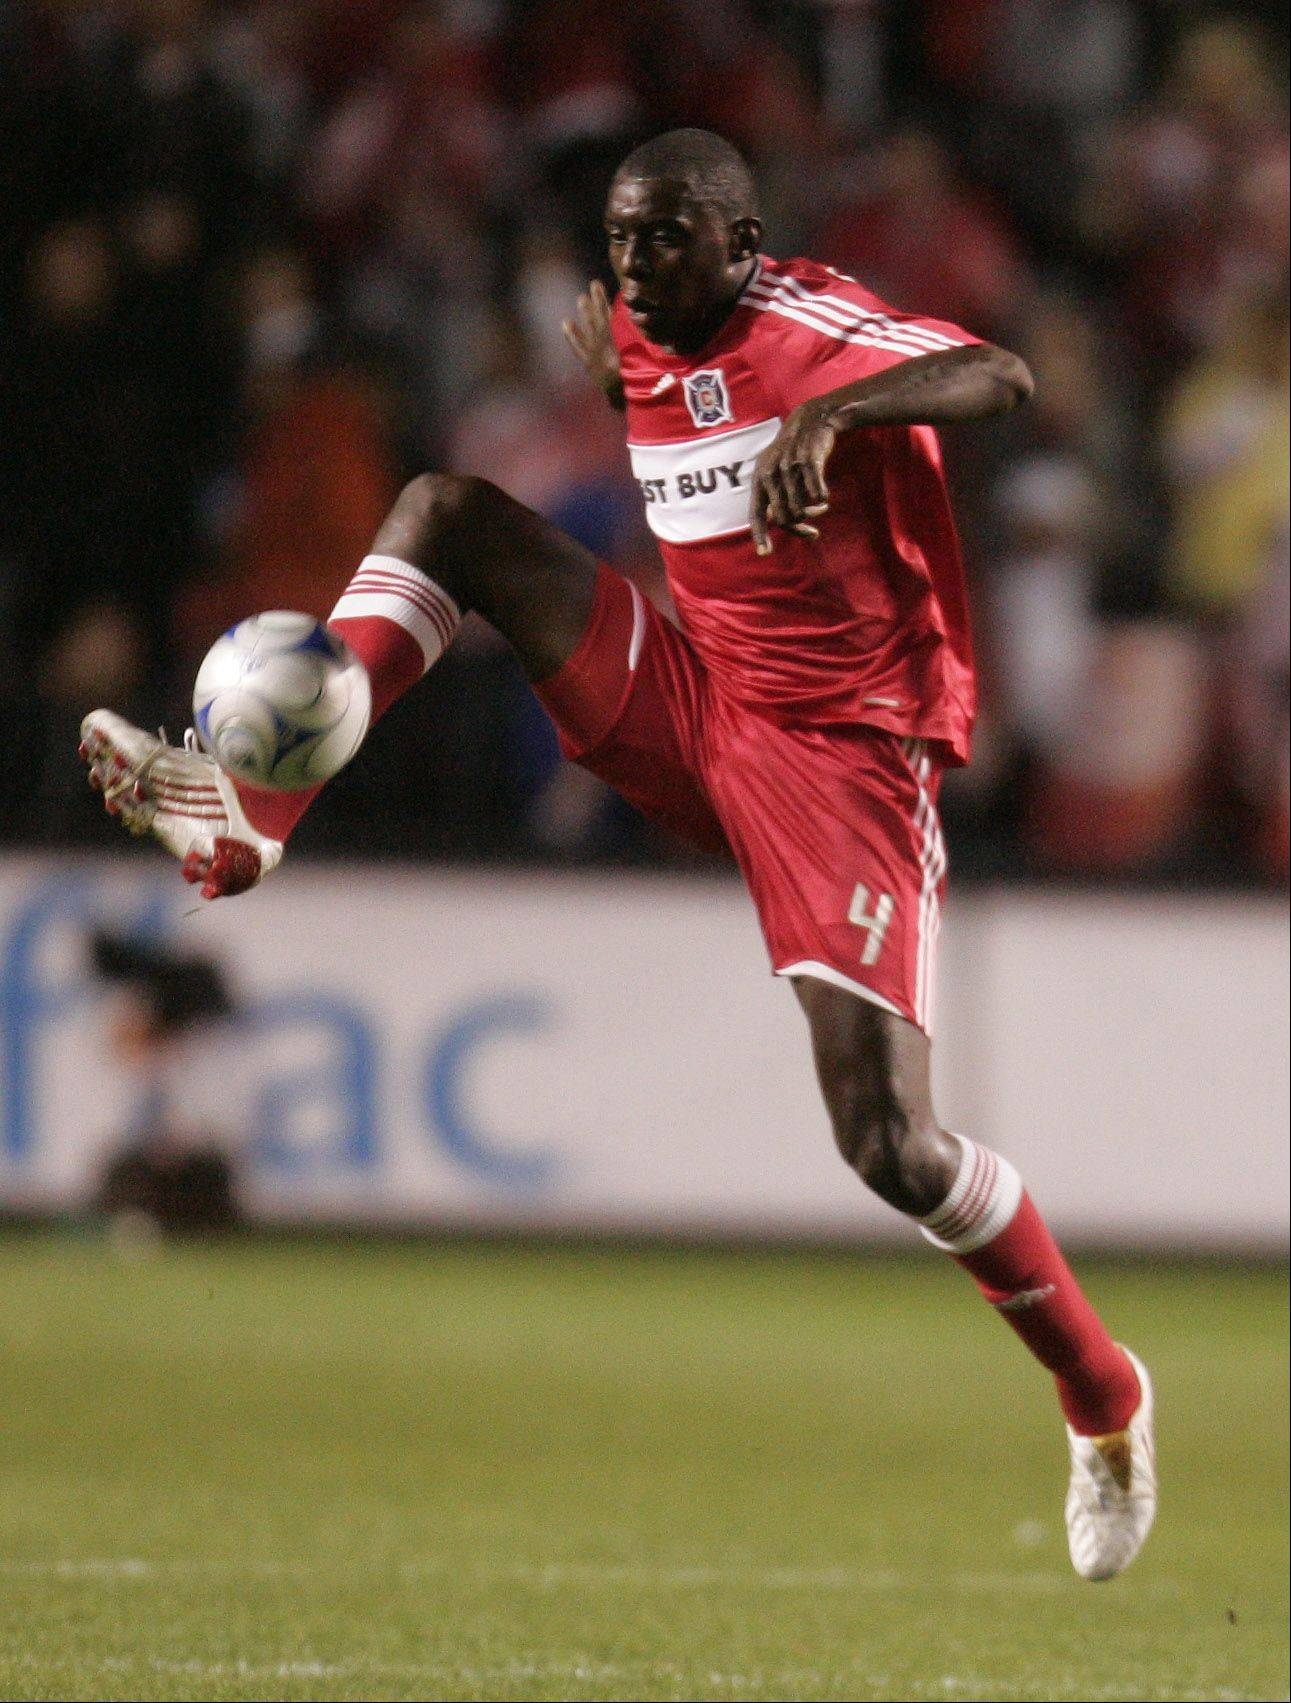 Central defender Bakary Soumare is getting his wish of being traded back to the Chicago Fire.